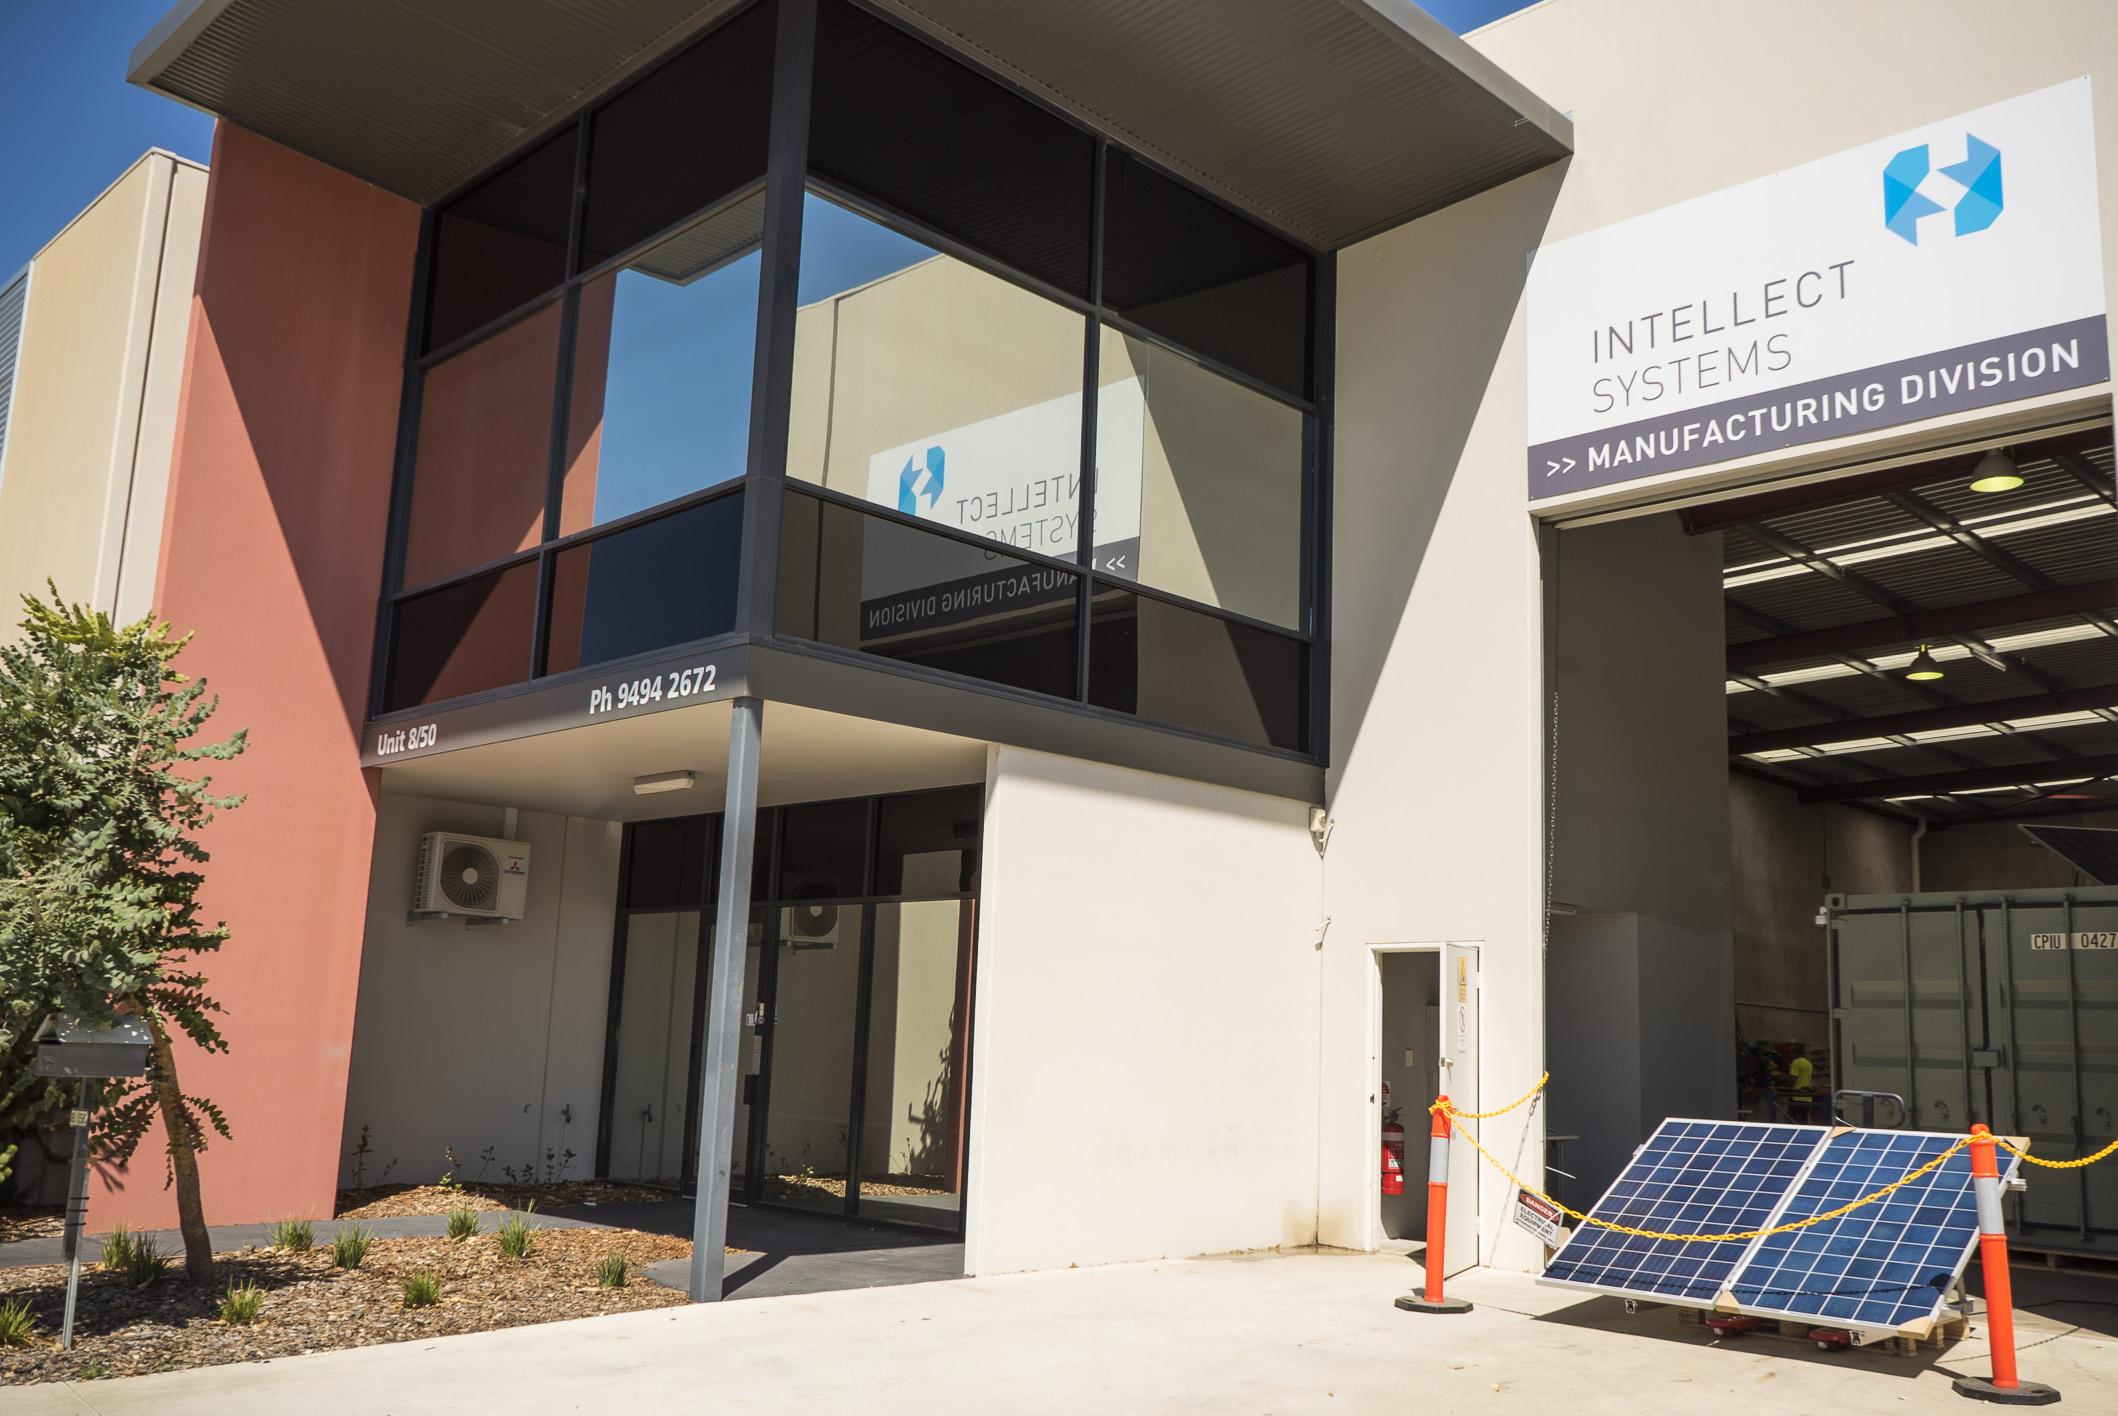 Intellect Systems Manufacturing Plant in Bibra Lake